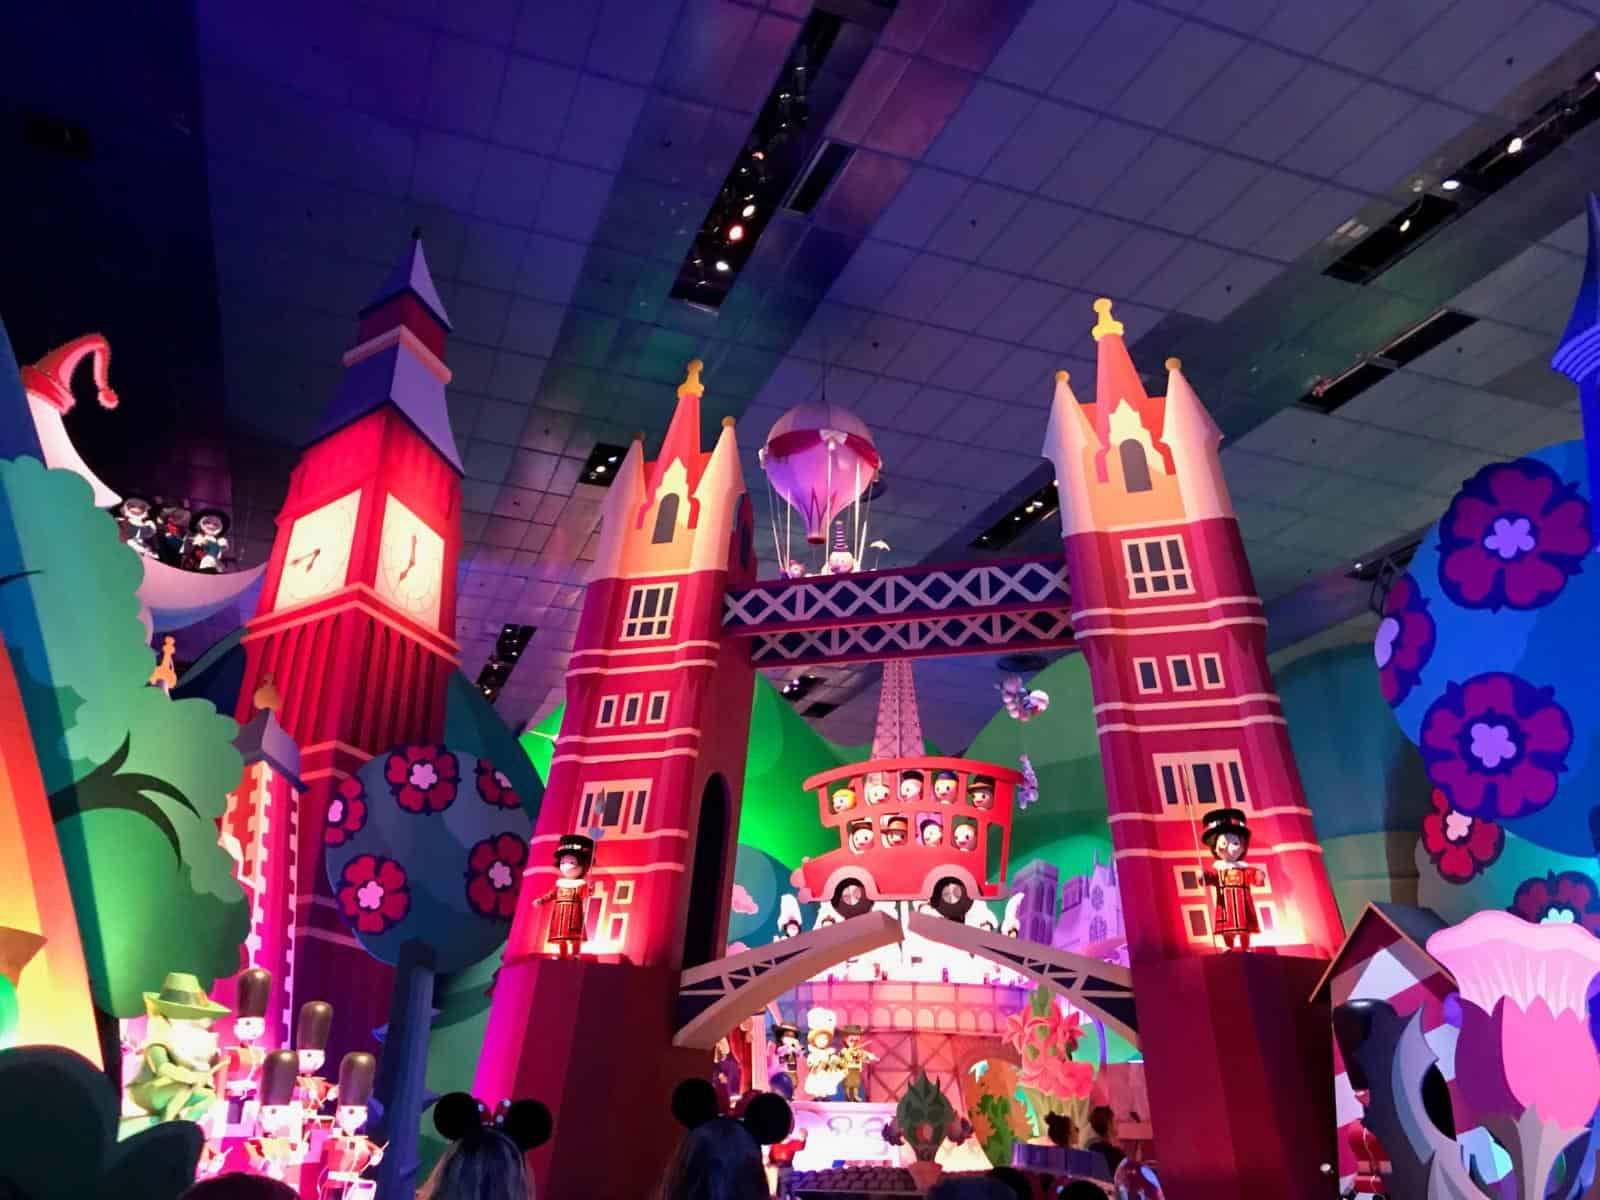 Best disneyland rides for toddler - including It's a Small world fantasyland rides for toddlers